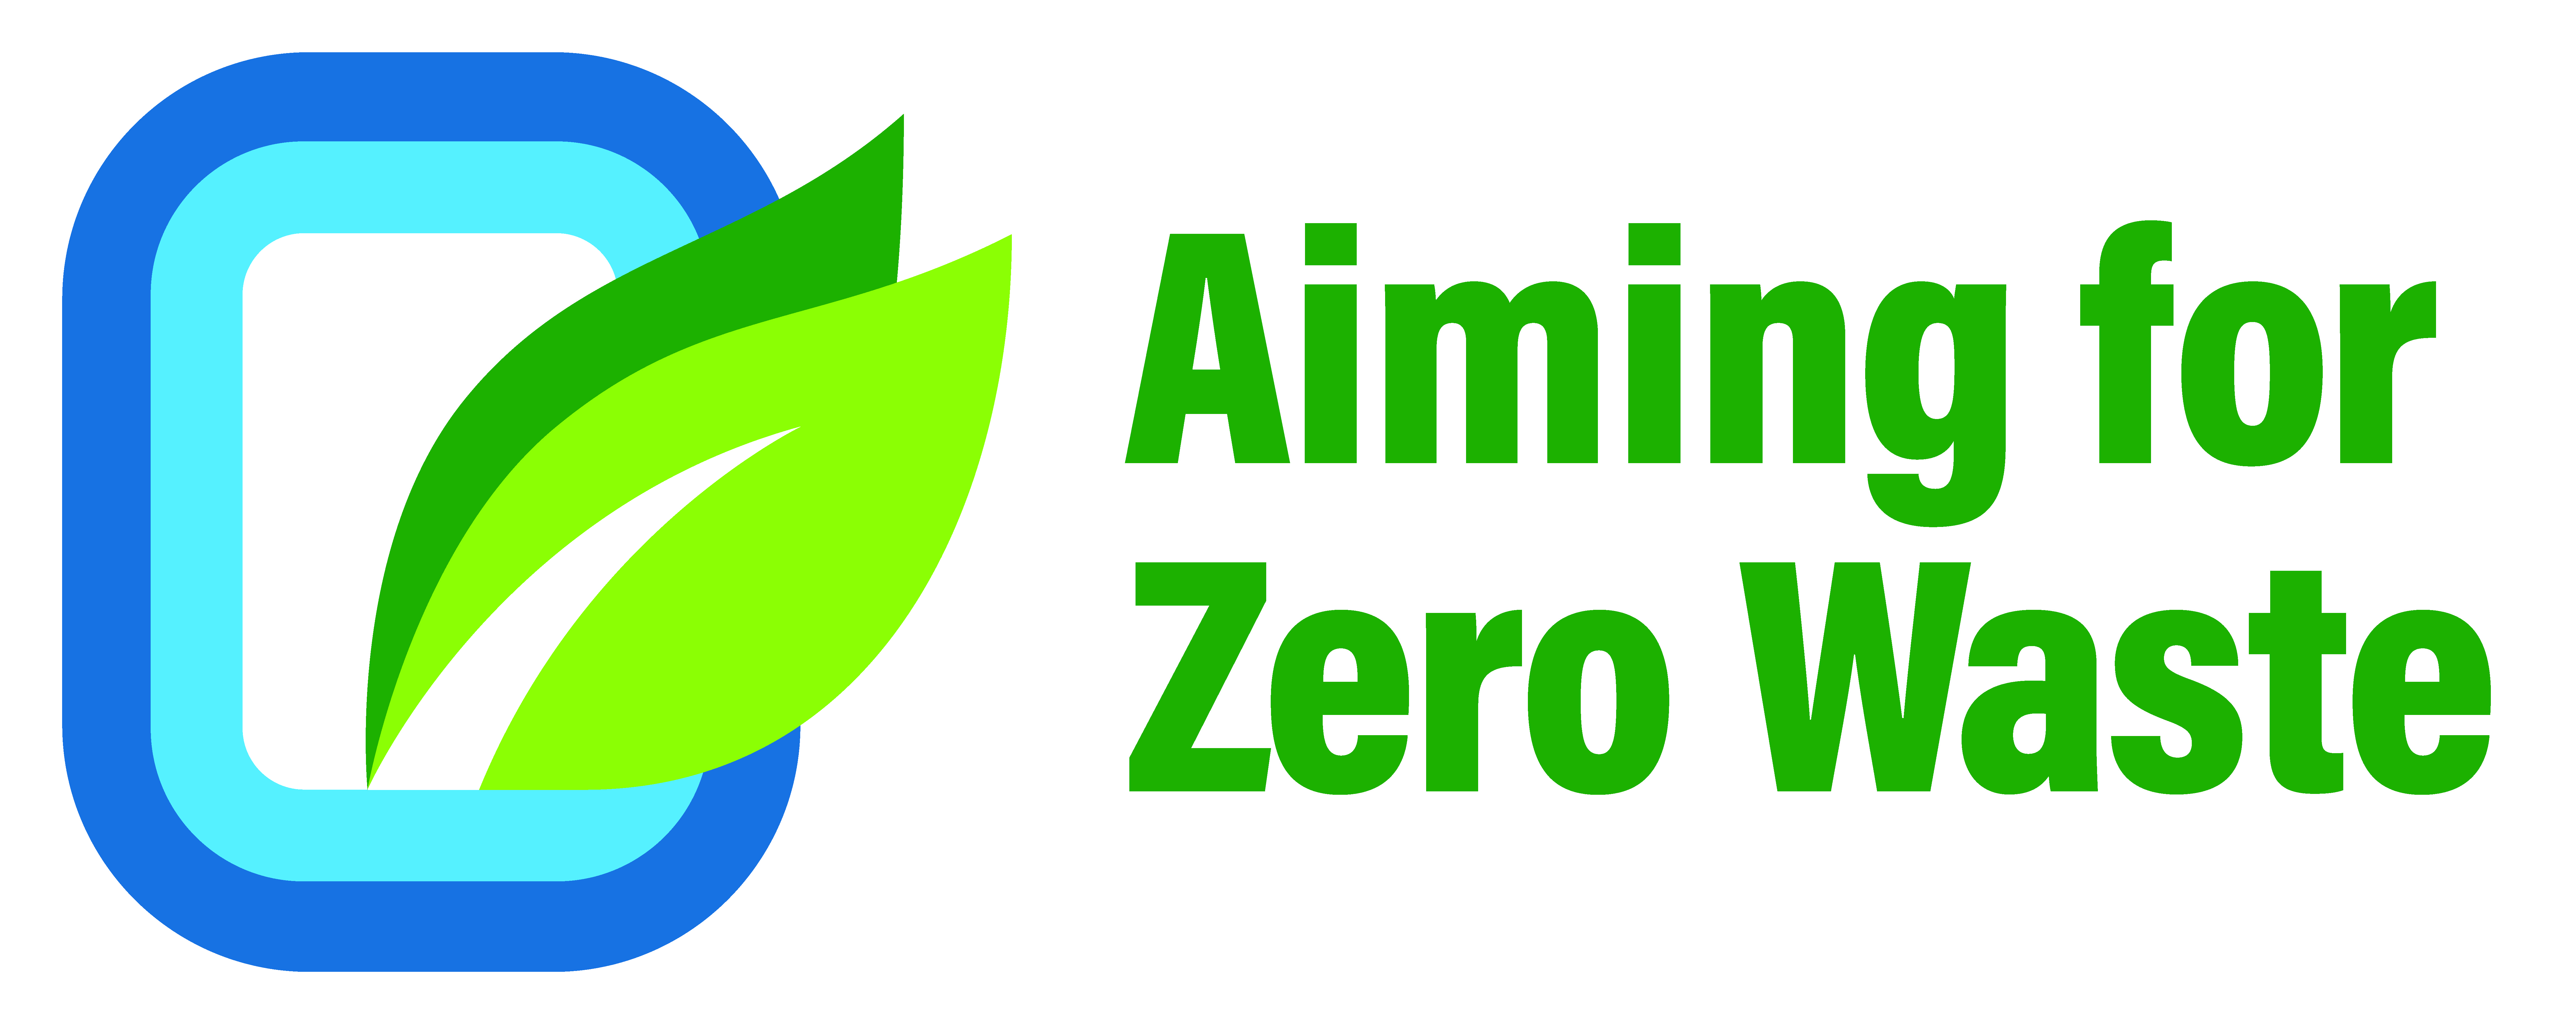 """Take the """"Aiming for Zero Waste"""" survey and attend a local event"""